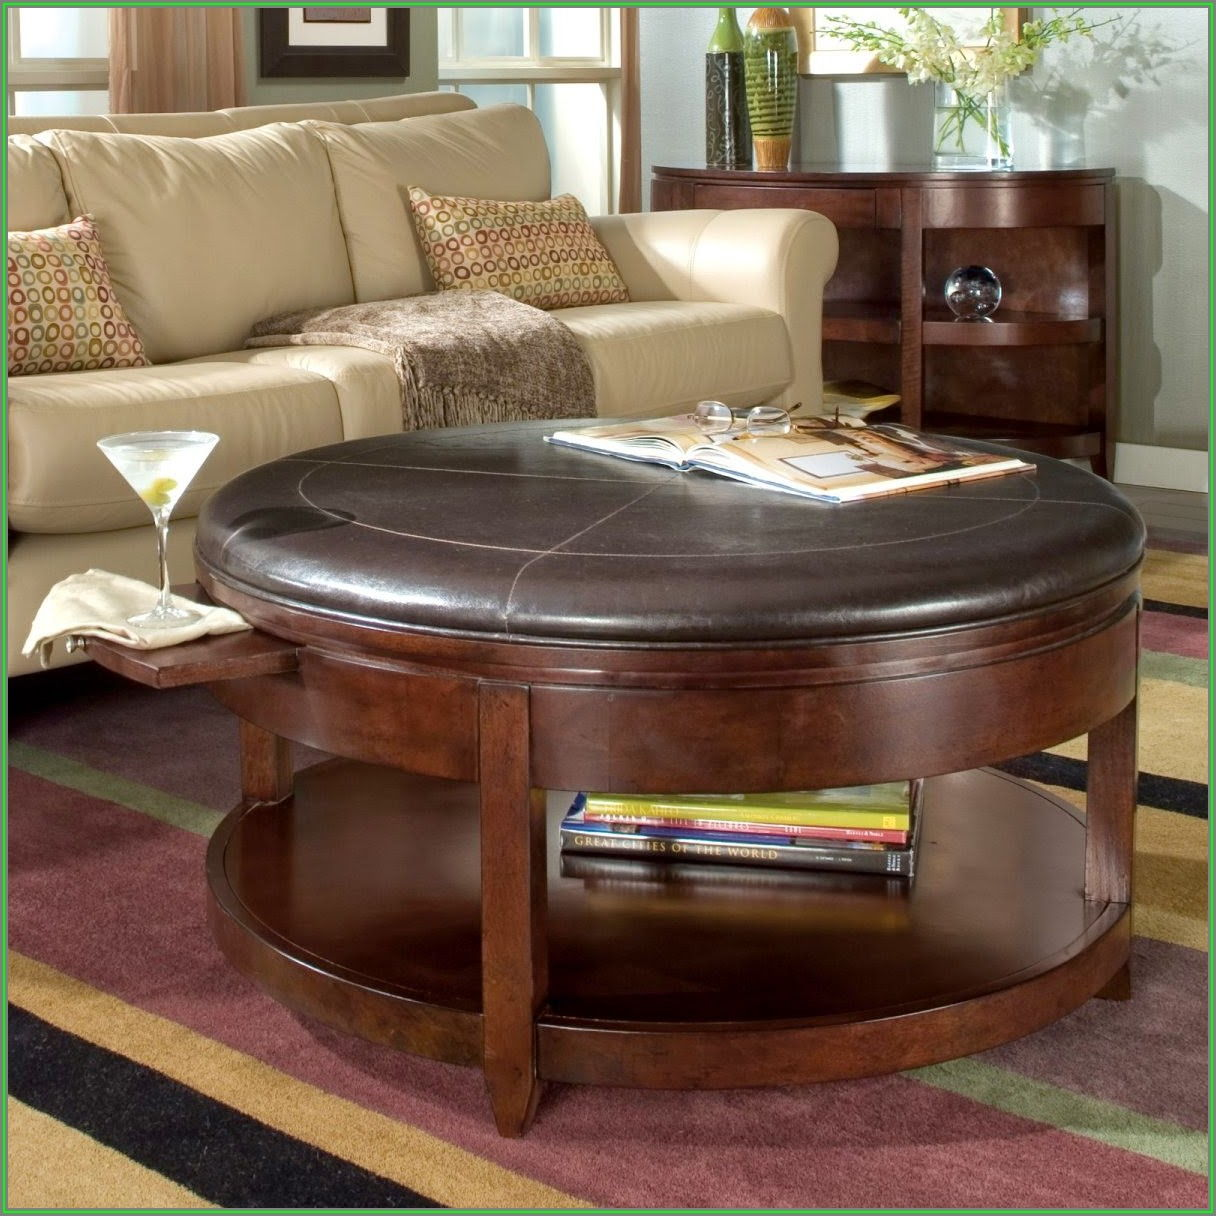 Upholstered Round Ottoman Coffee Table